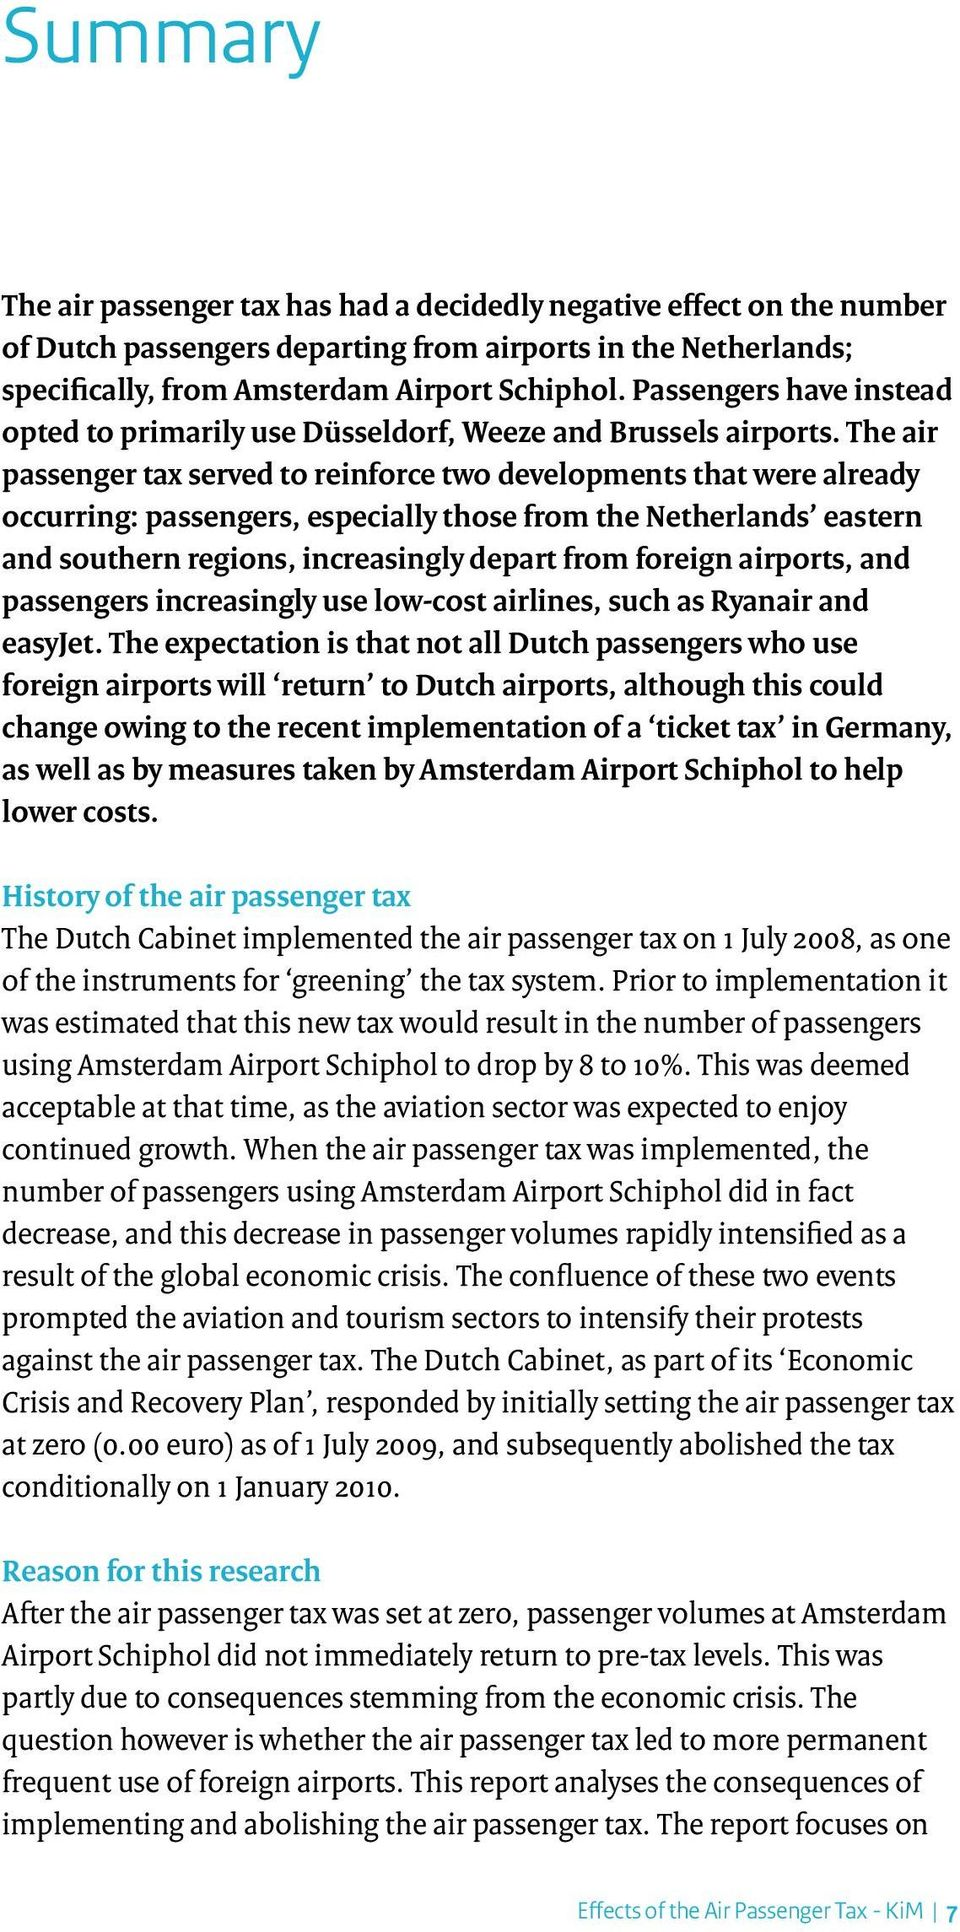 The air passenger tax served to reinforce two developments that were already occurring: passengers, especially those from the Netherlands eastern and southern regions, increasingly depart from